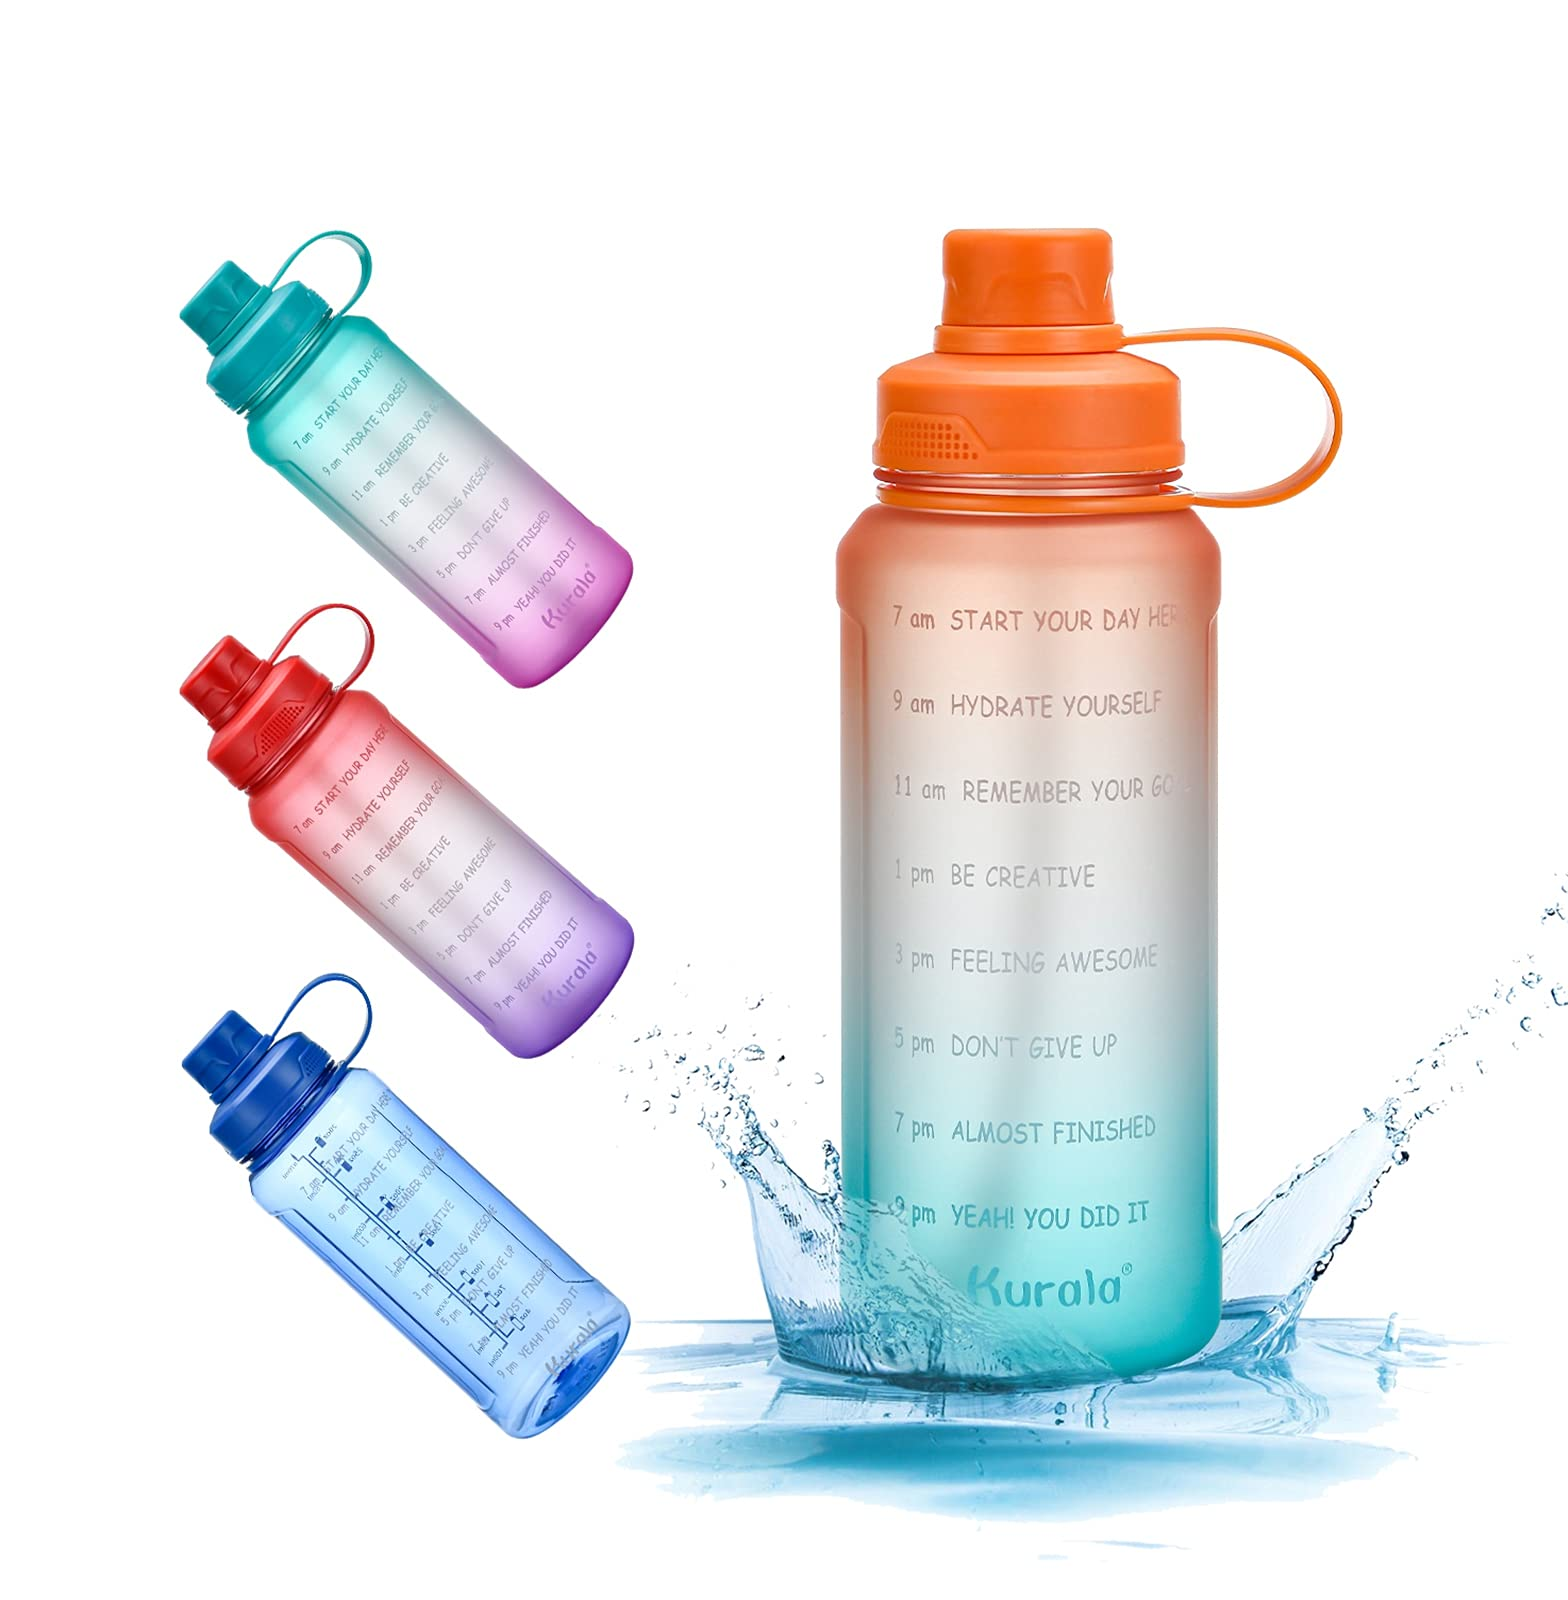 32 oz Motivational Water Bottle with Time Marker Reminder & Straw, Leak-proof No BPA Hydration Sports Daily Water Bottle Jug for Fitness Gym Outdoor Sports Activity (Orange Green Gradient)